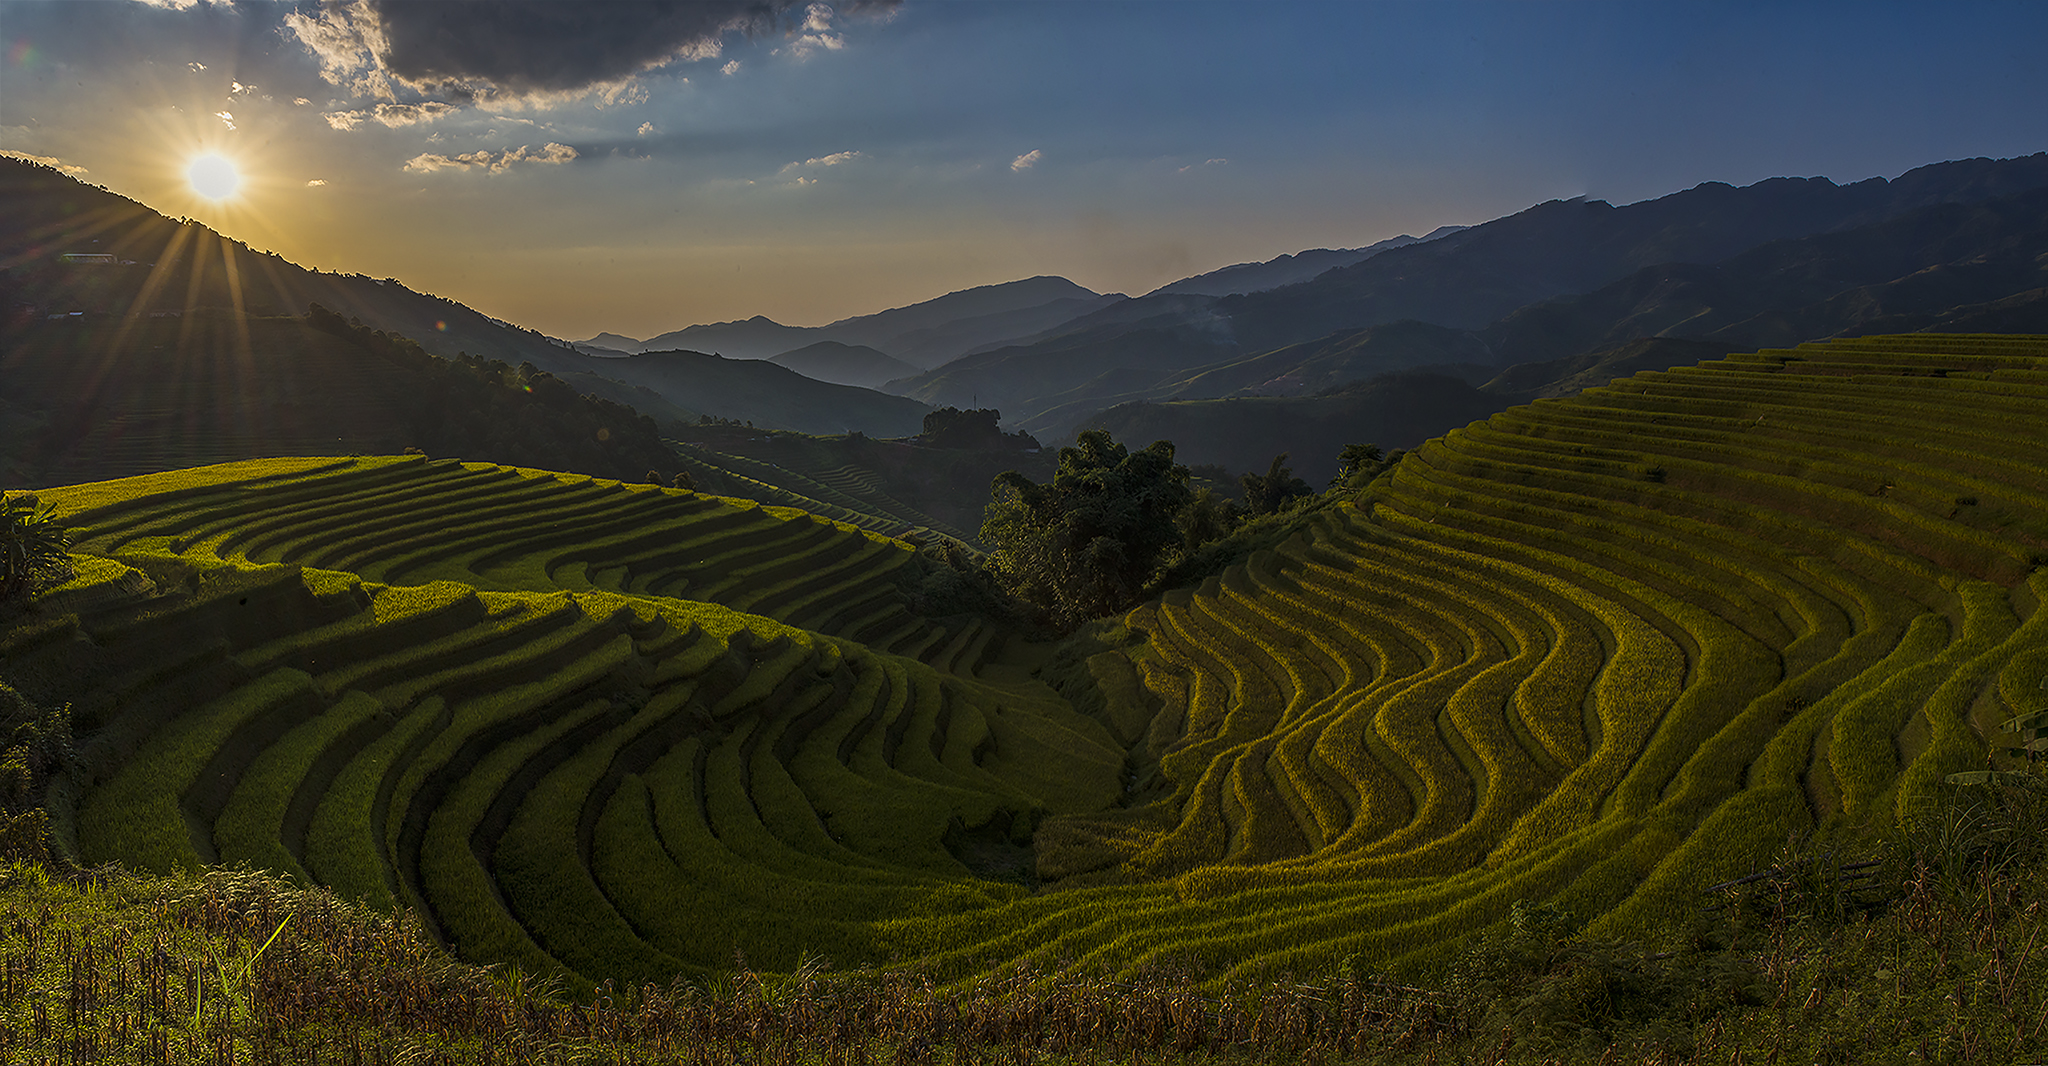 Sunset over the rice terraces